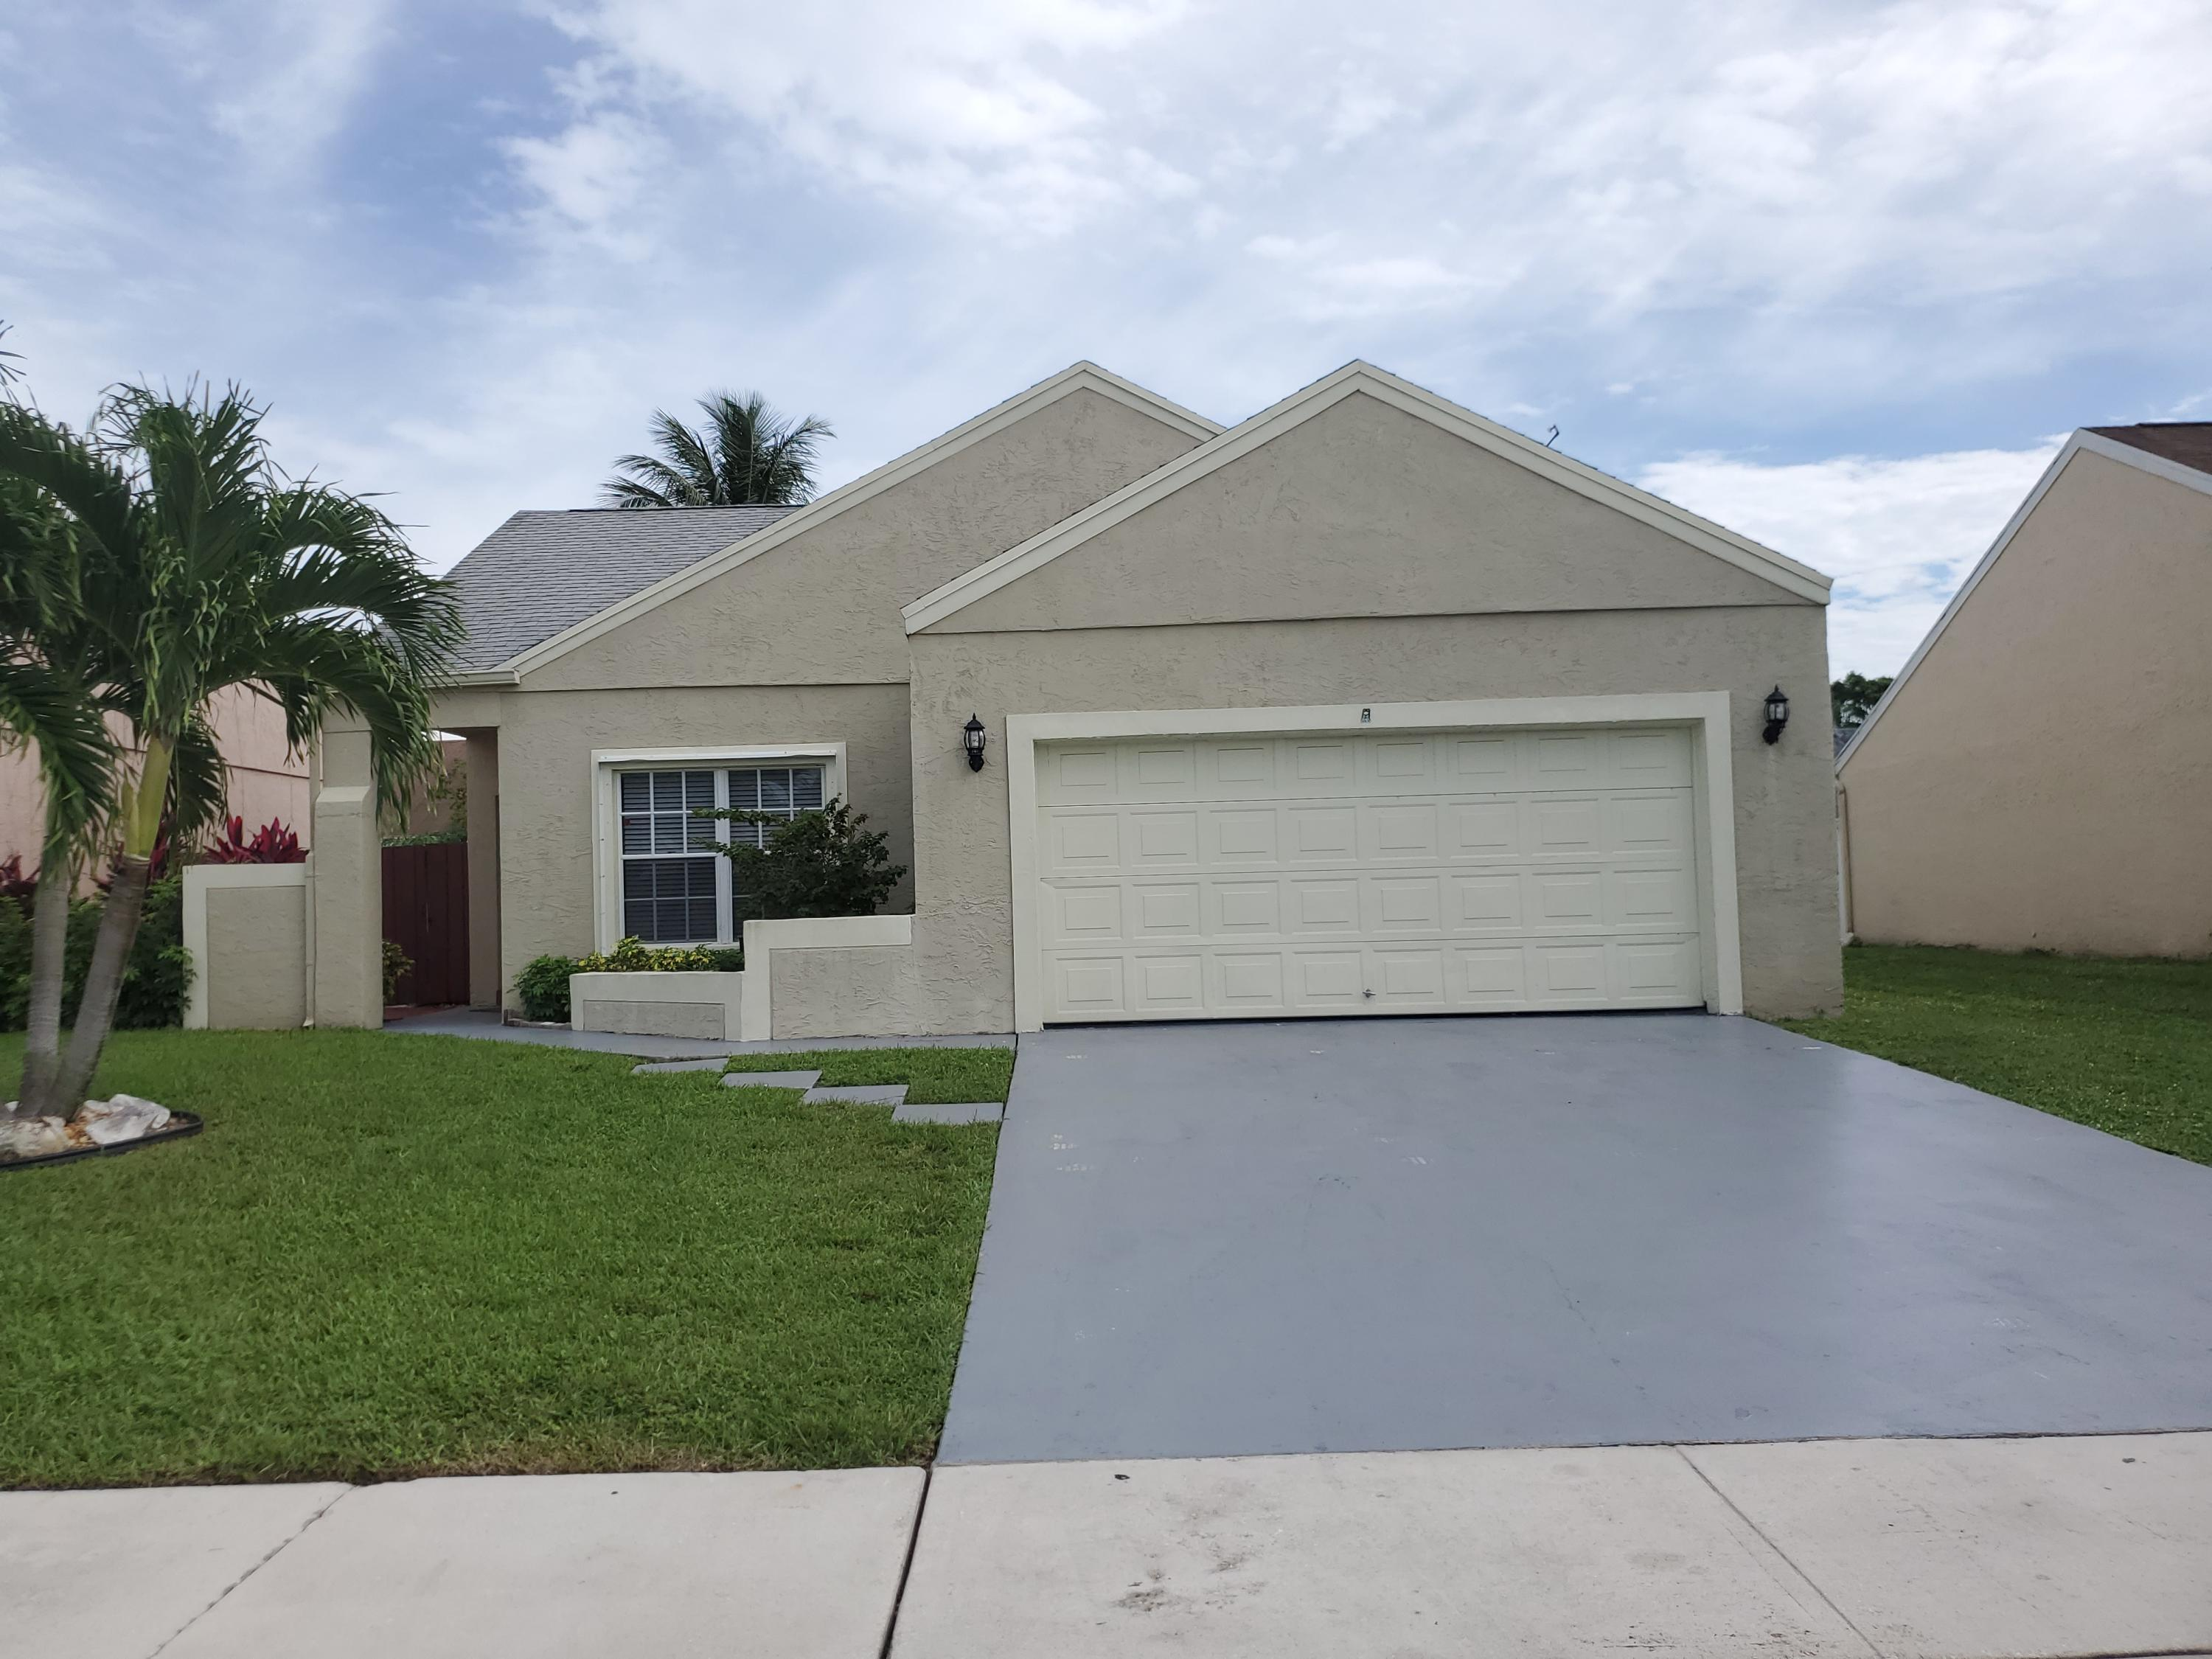 Adorable house in a great area; Fresh painted and all Mexican tile floors scrubbed; Kitchen remodeled in 2018 also the appliances. New water heater. fabulous huge screened androofed porch. Fenced Yard. Nice community pool.